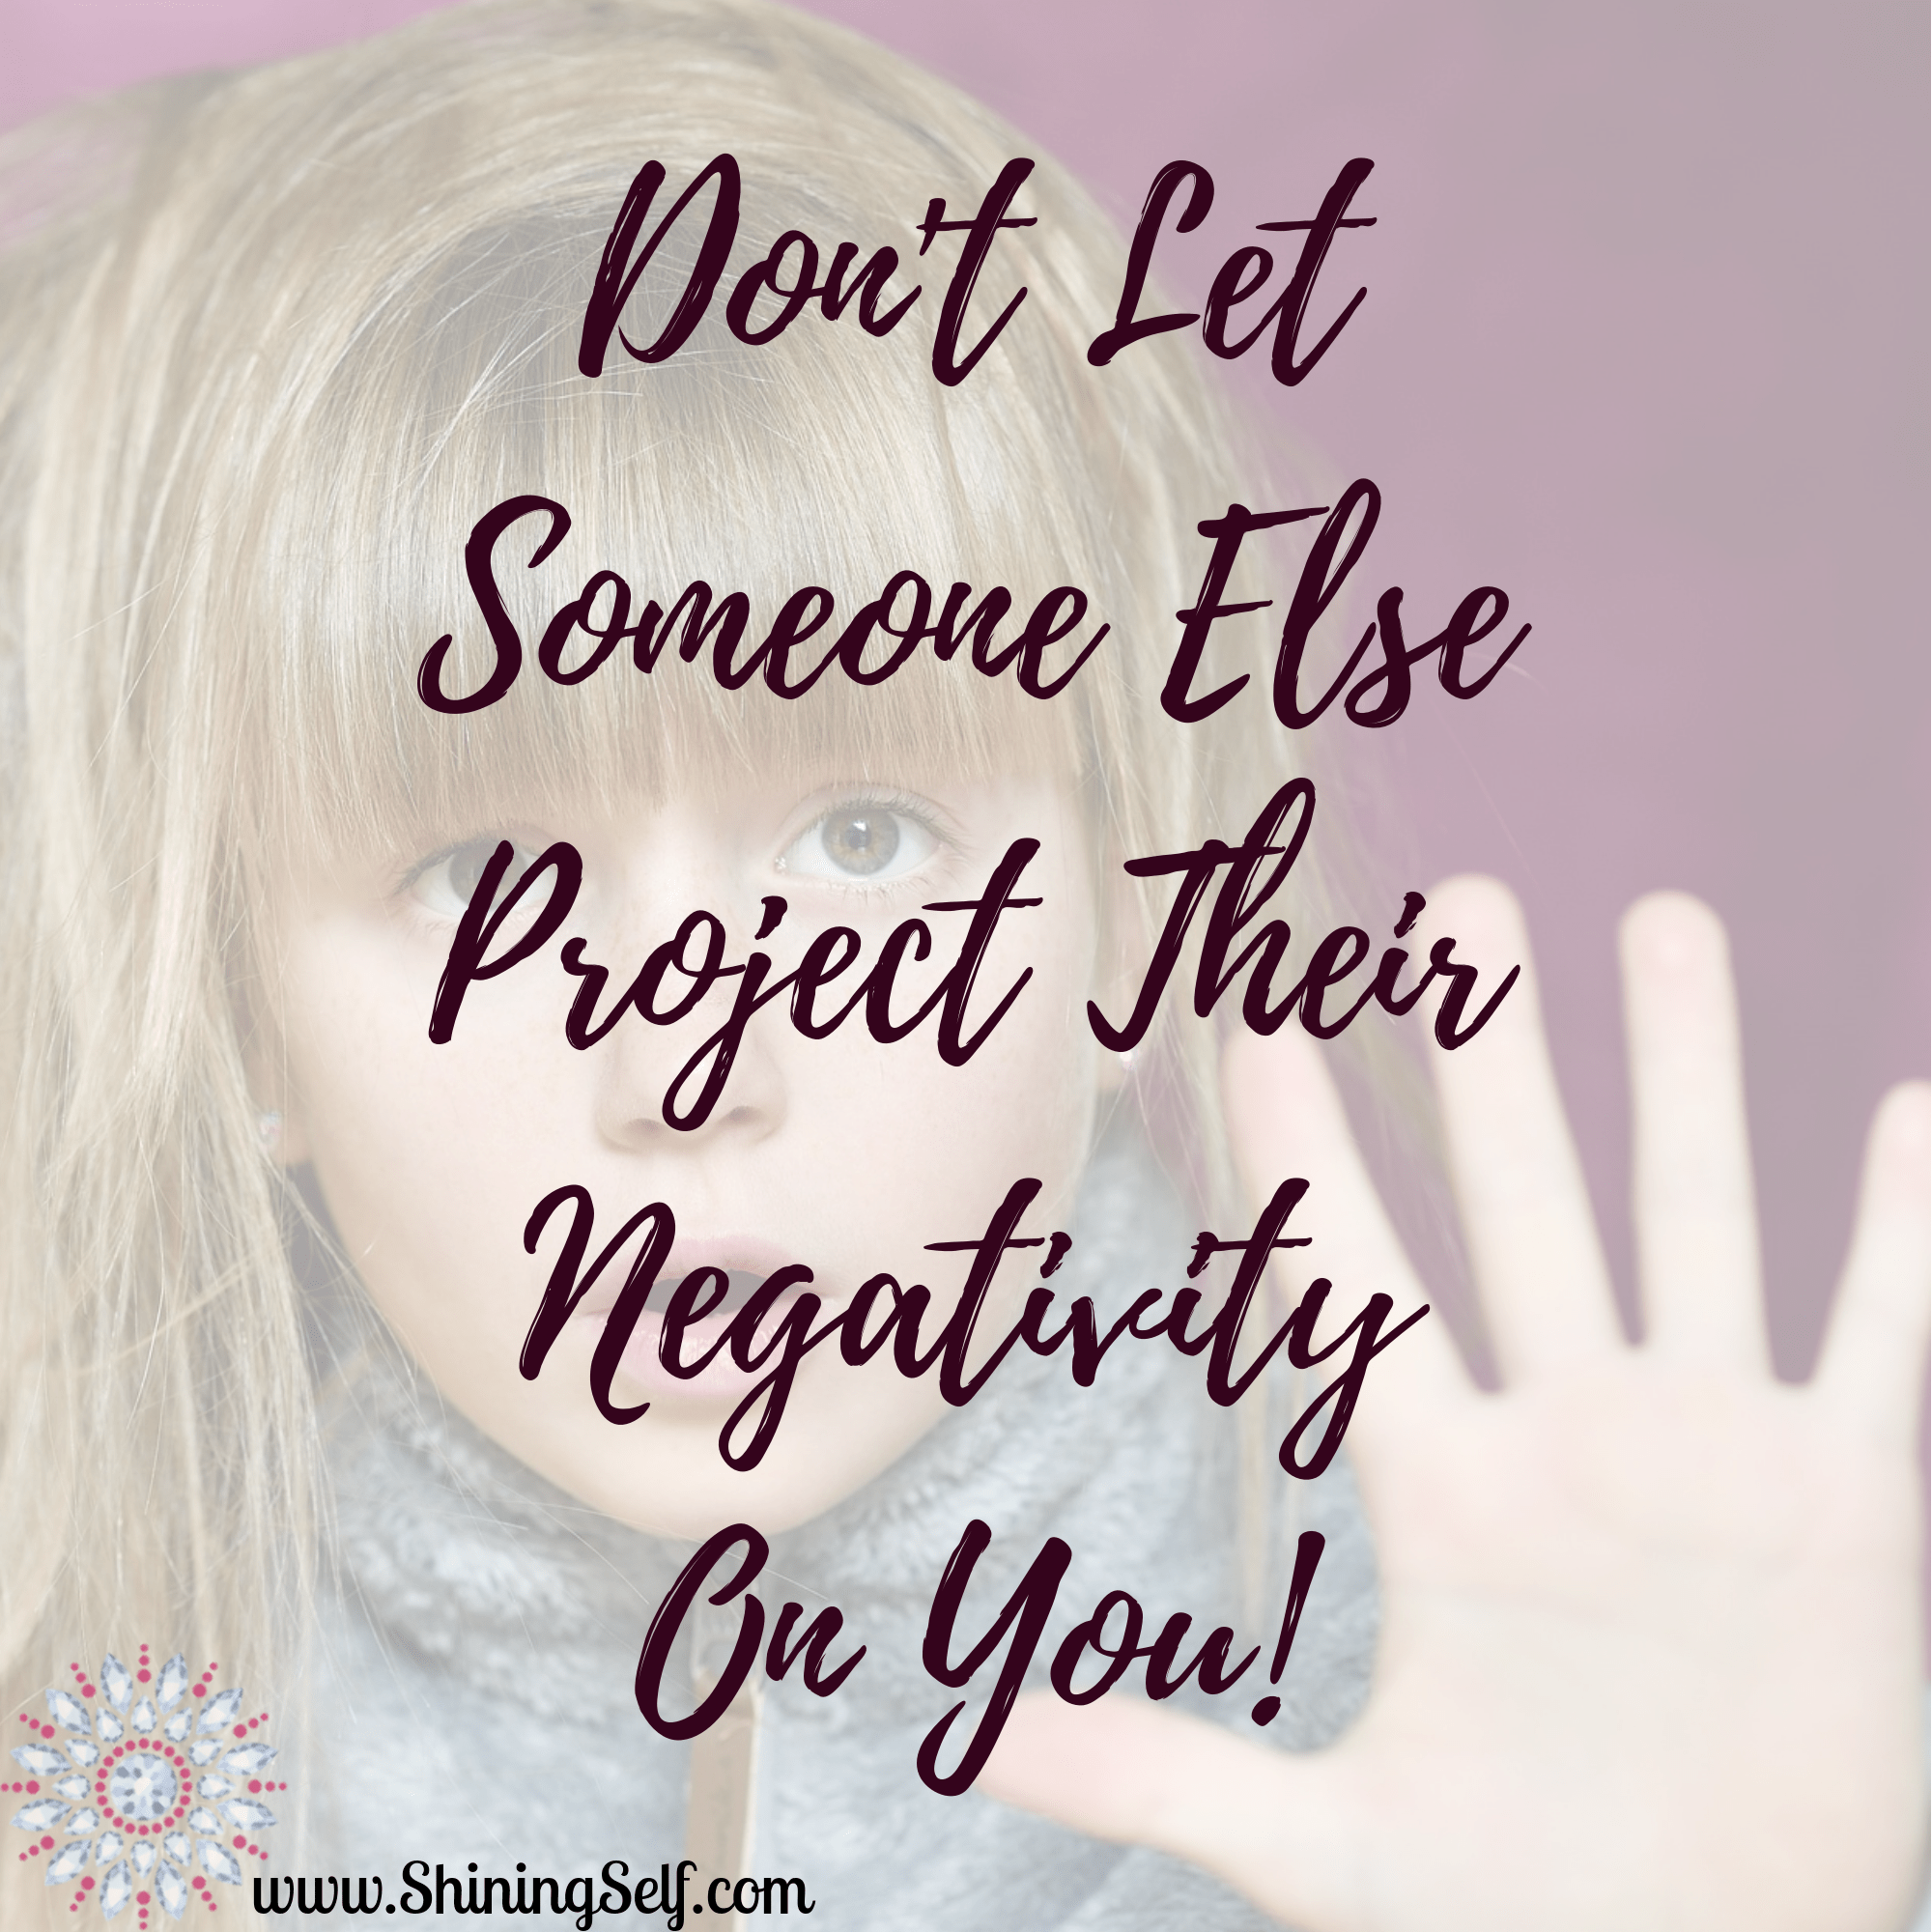 Don't Let Someone Else Project Their Negativity On You!